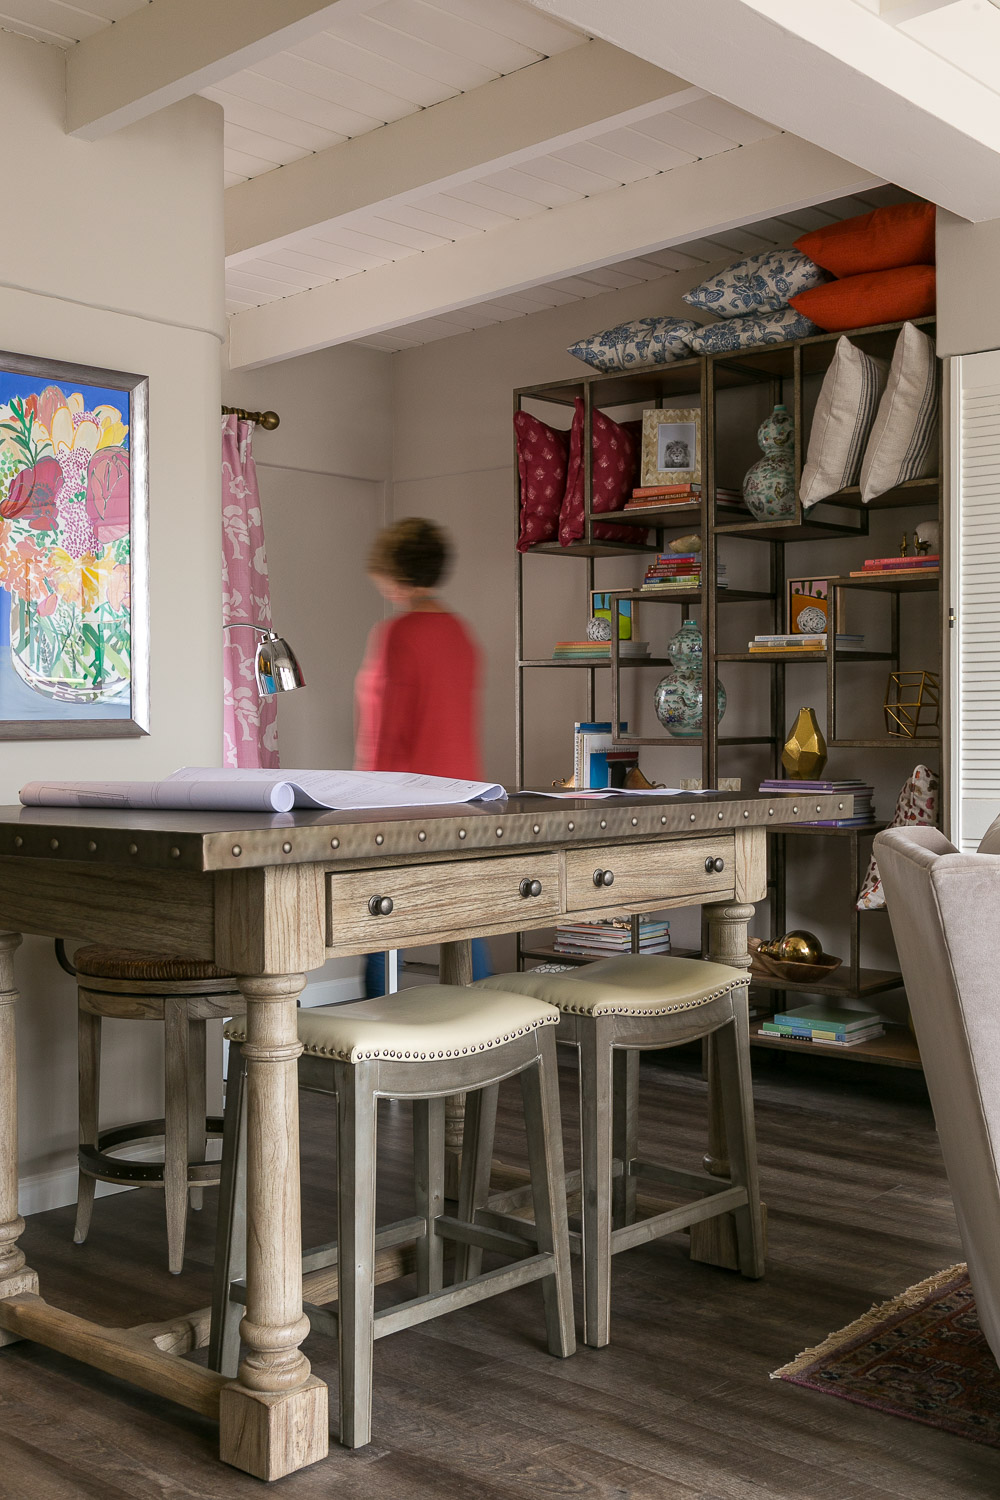 Design by Price Style and Design. Photography by  Kathryn Macdonald .   Bistro Table  //  Armless Counter Stools  //  Counter Stoo l (behind bistro table)